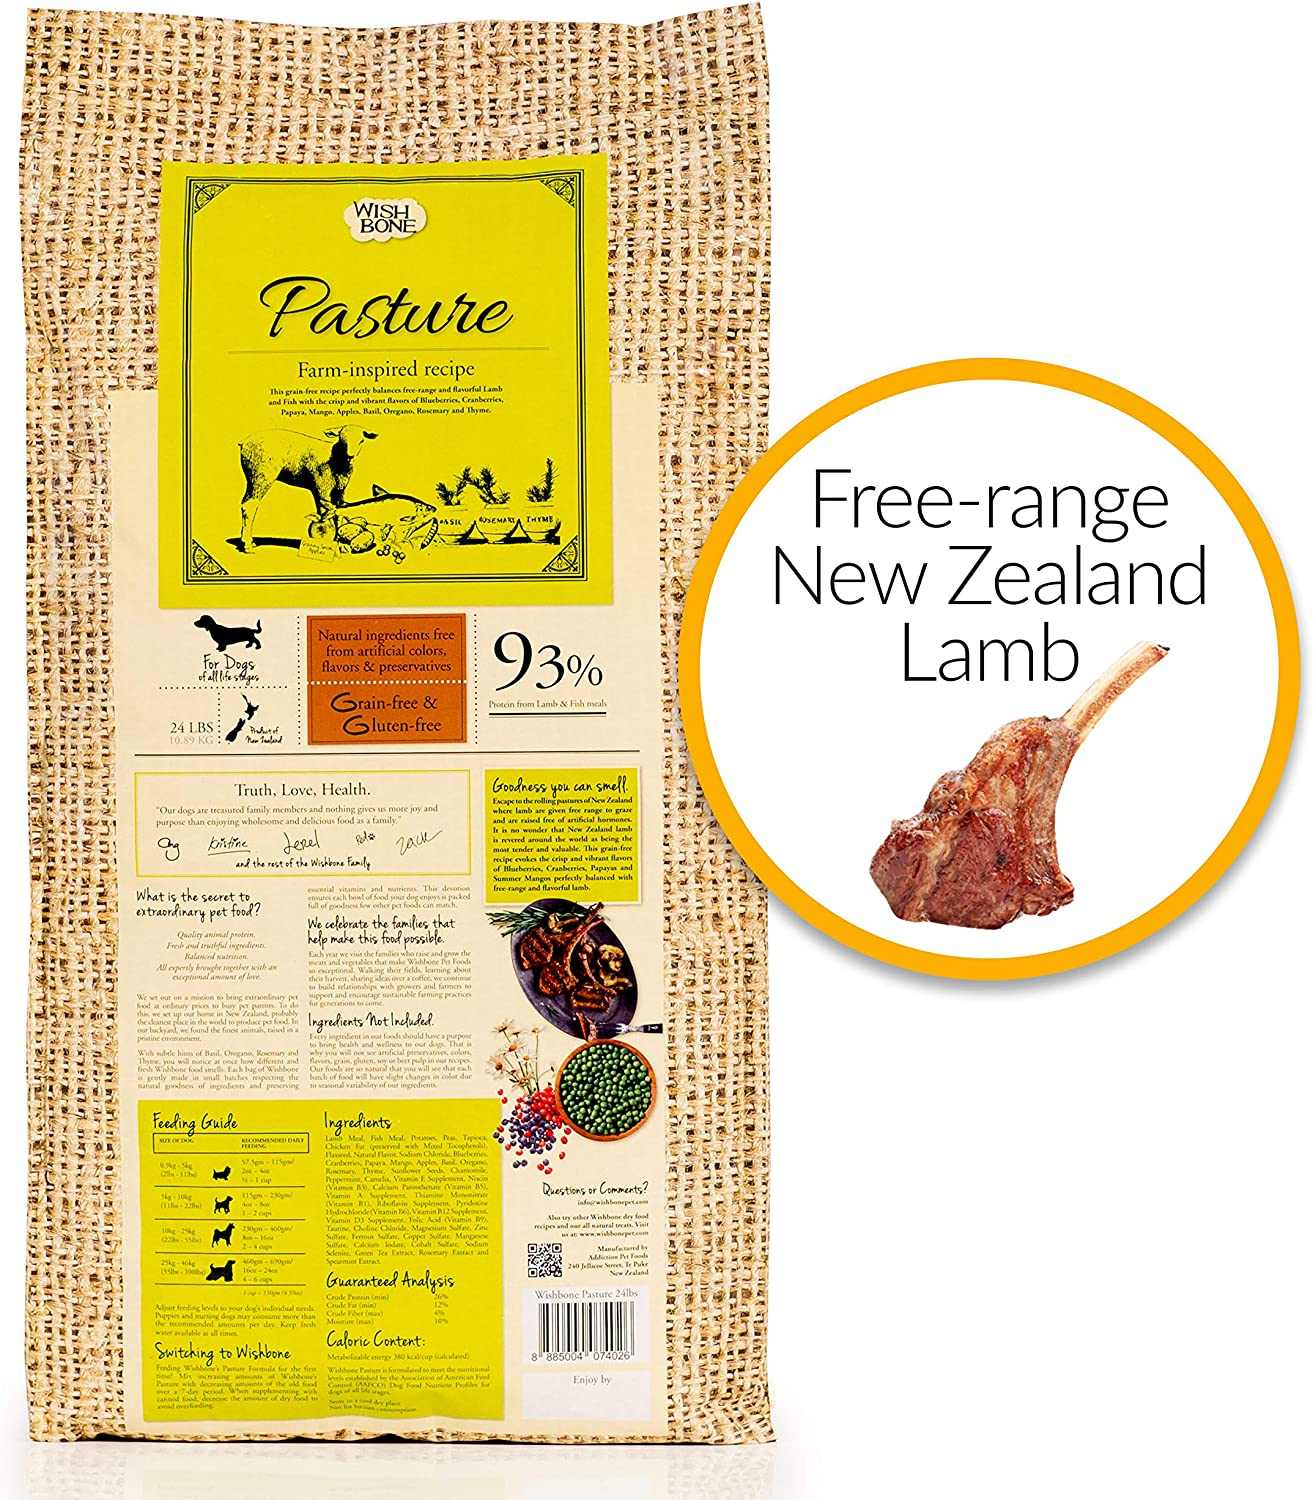 Wishbone Pasture Grain Free and Gluten Free Dry Dog Food, Made from New Zealand Lamb Dog Food, All Natural Dry Dog Food, Rich in Omega 3and High Protein Dry Dog Food, For All Dog Life Stages